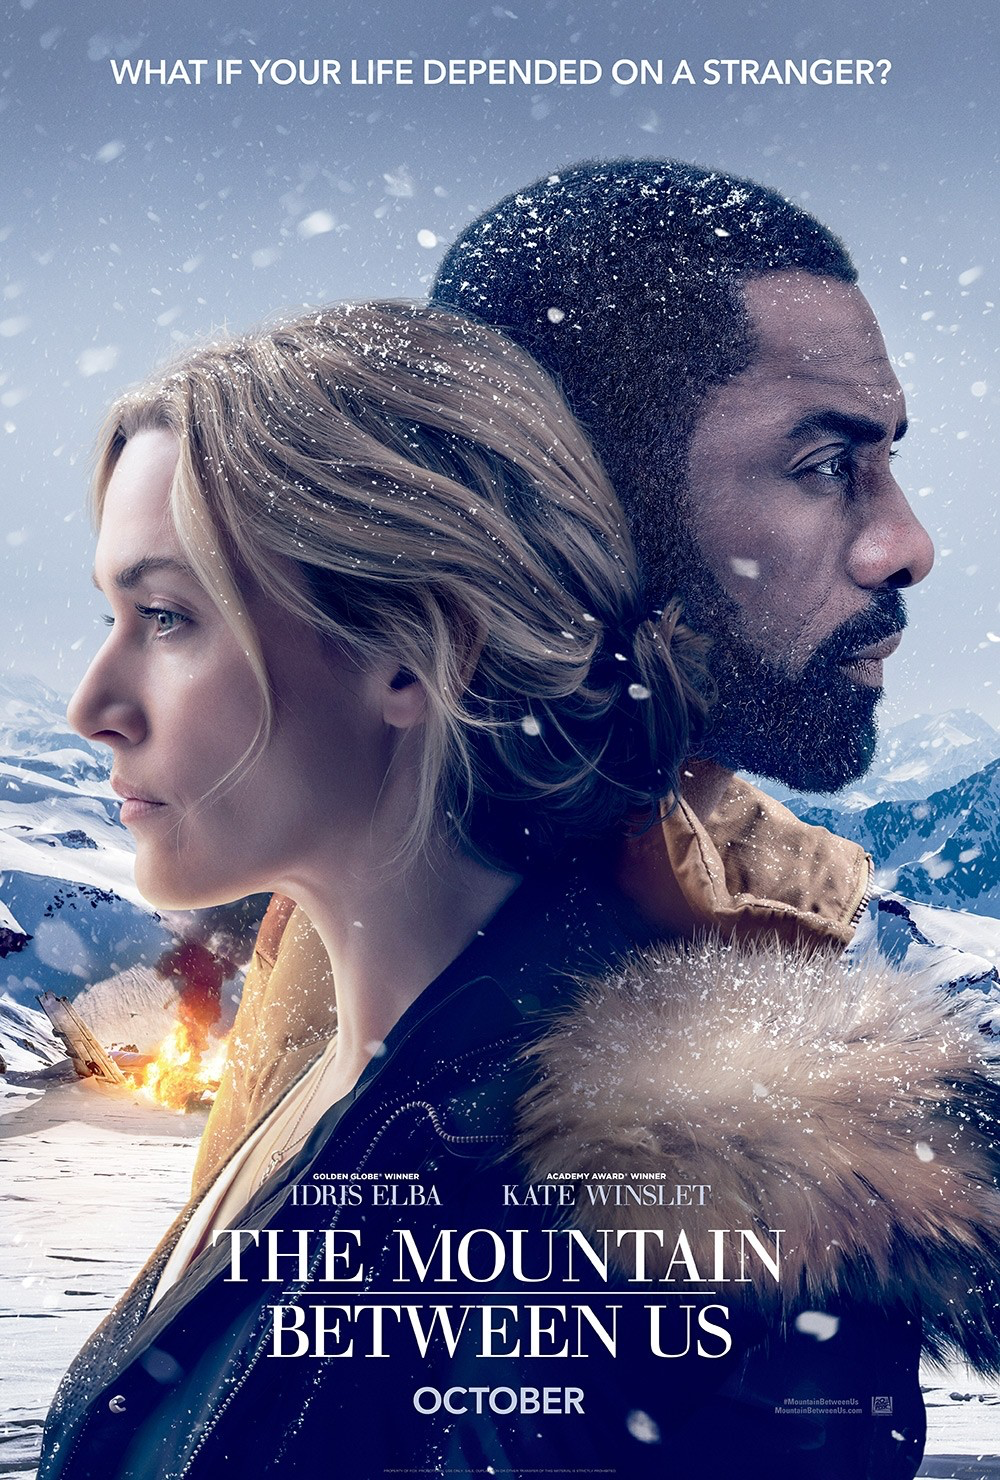 The Mountain Between Us 3 5 Gavels 46 Rotten Tomatoes The Movie Judge